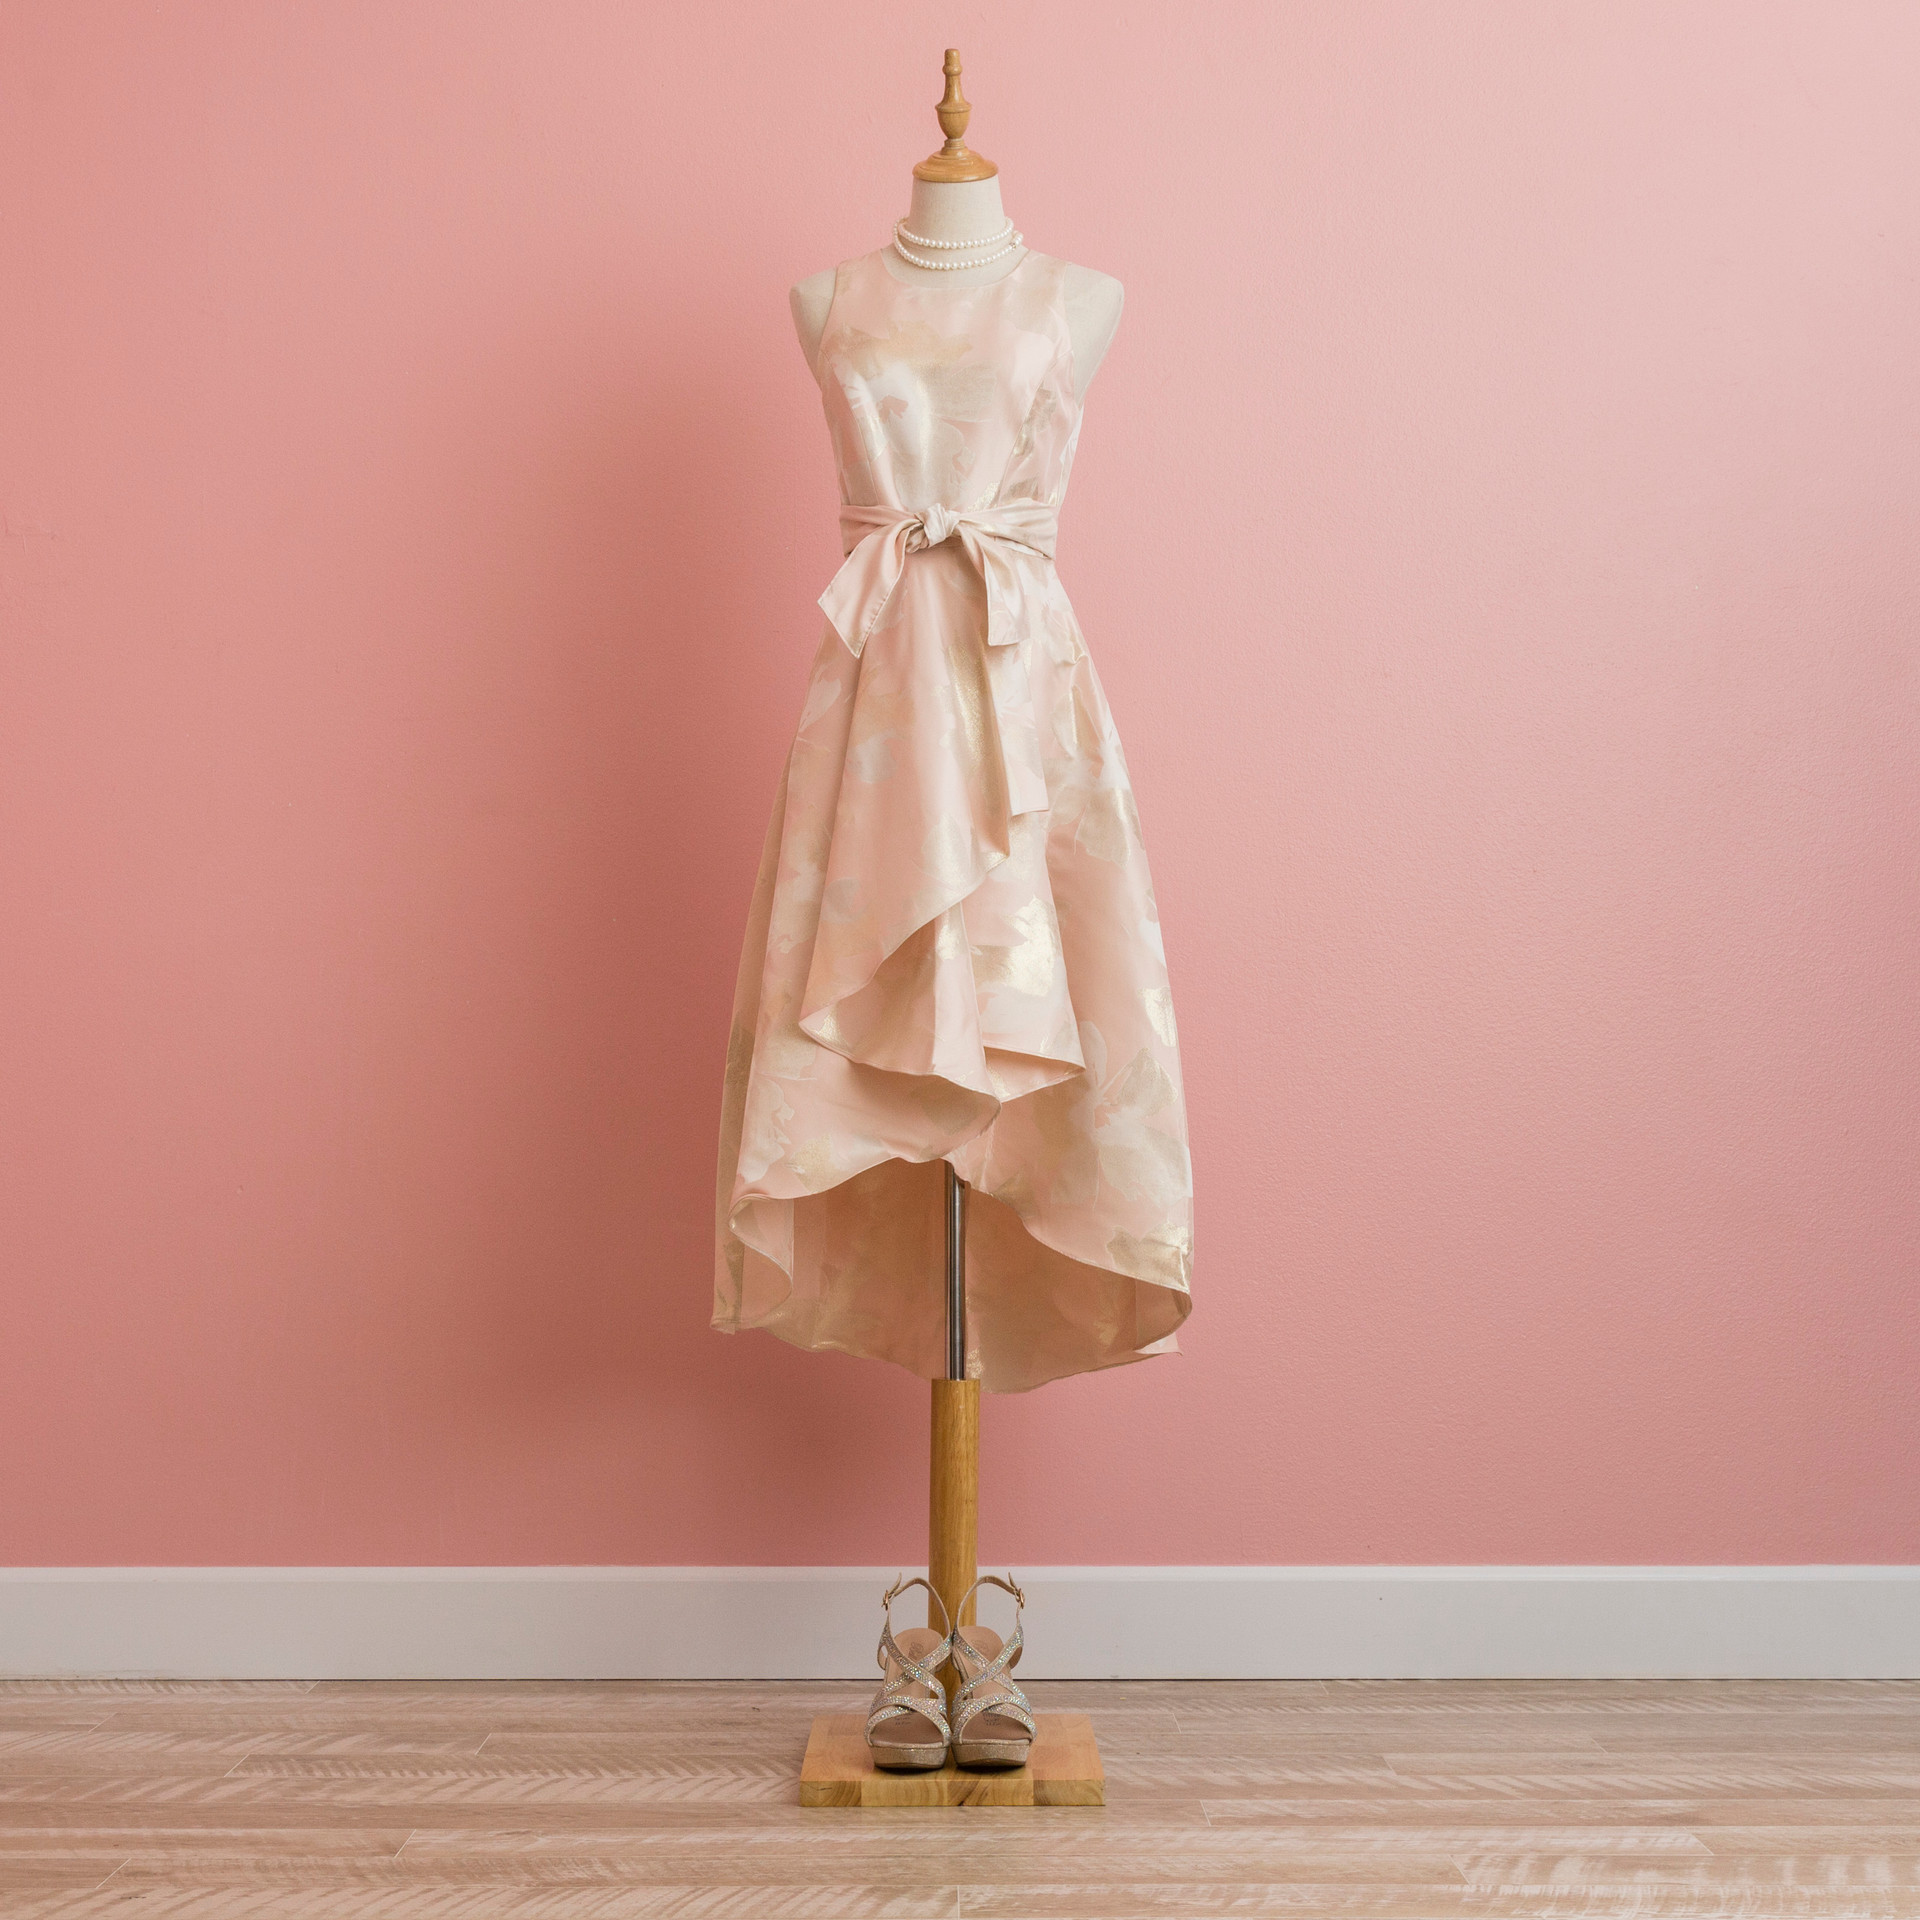 Shoshana pale pink dress: PD0912PI91